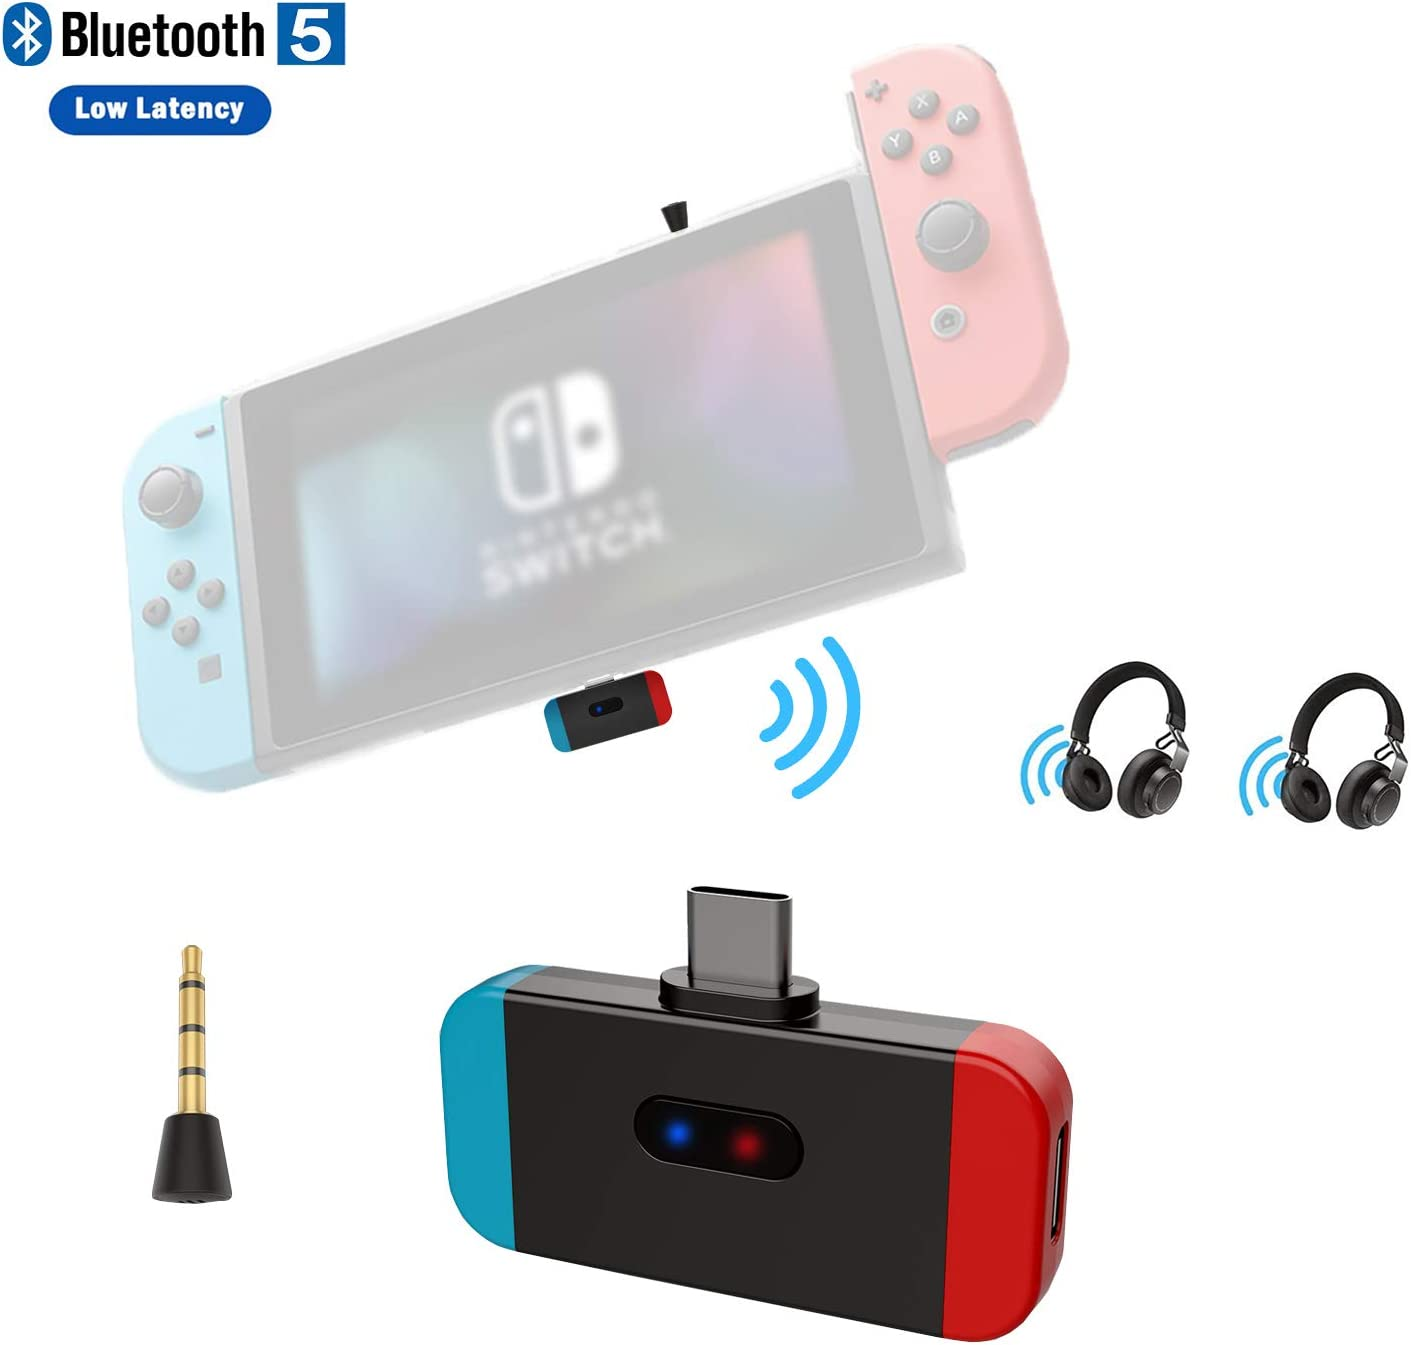 Amazon Com Friencity Bluetooth Audio Transmitter Adapter For Nintendo Switch Lite Ps4 Usb C Connector Low Latency In Game Voice Chat Two Devices Compatible With Airpods Bose Sony Headphones Plug Play Home